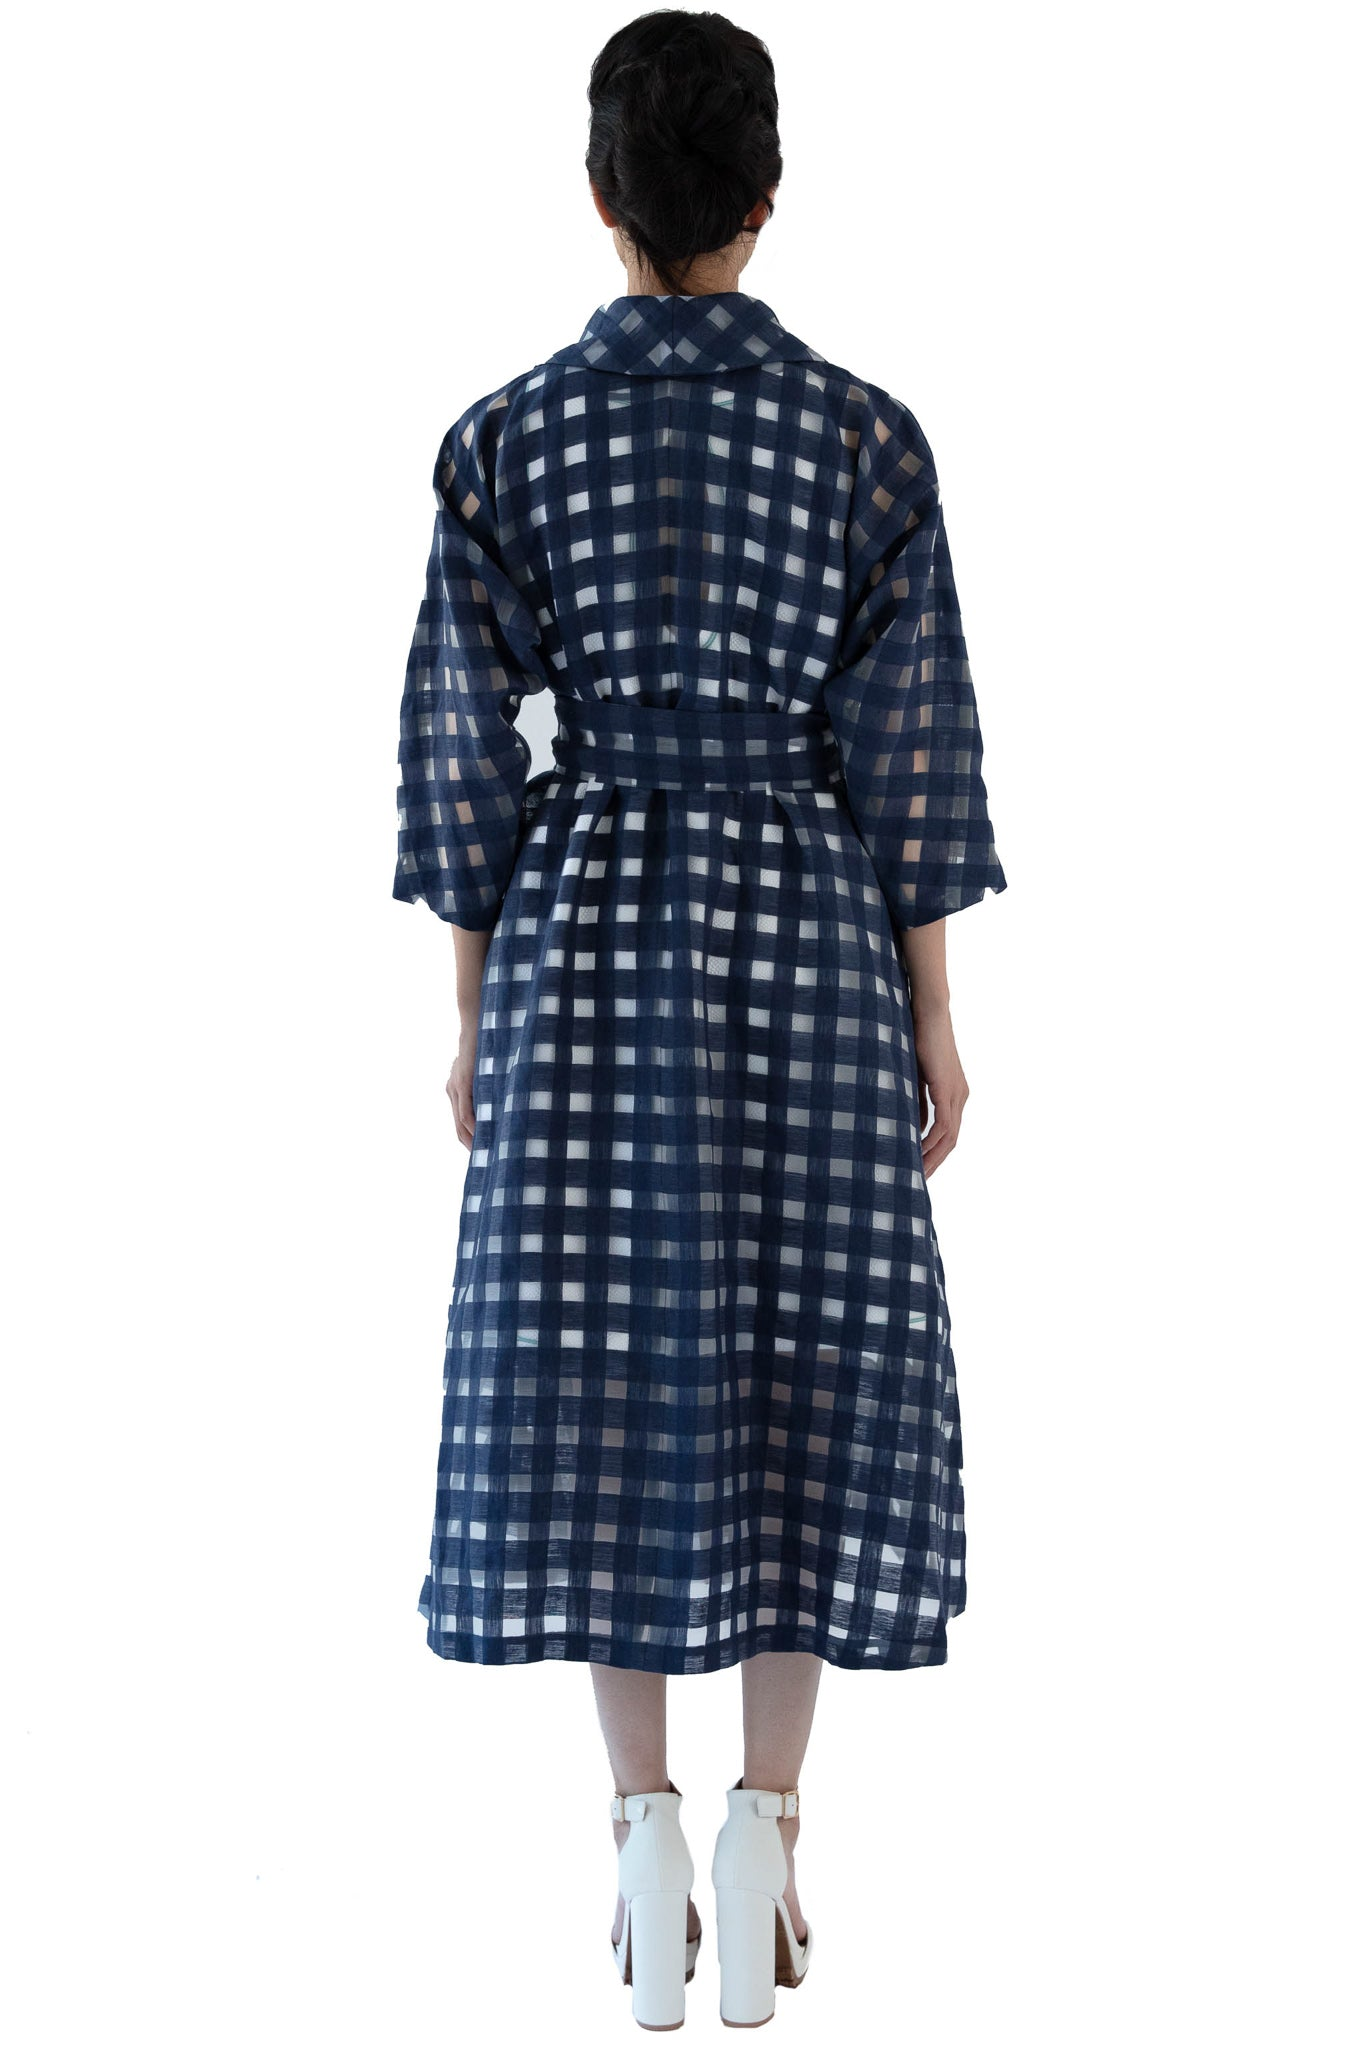 Back of navy blue window pane wrap dress with belt